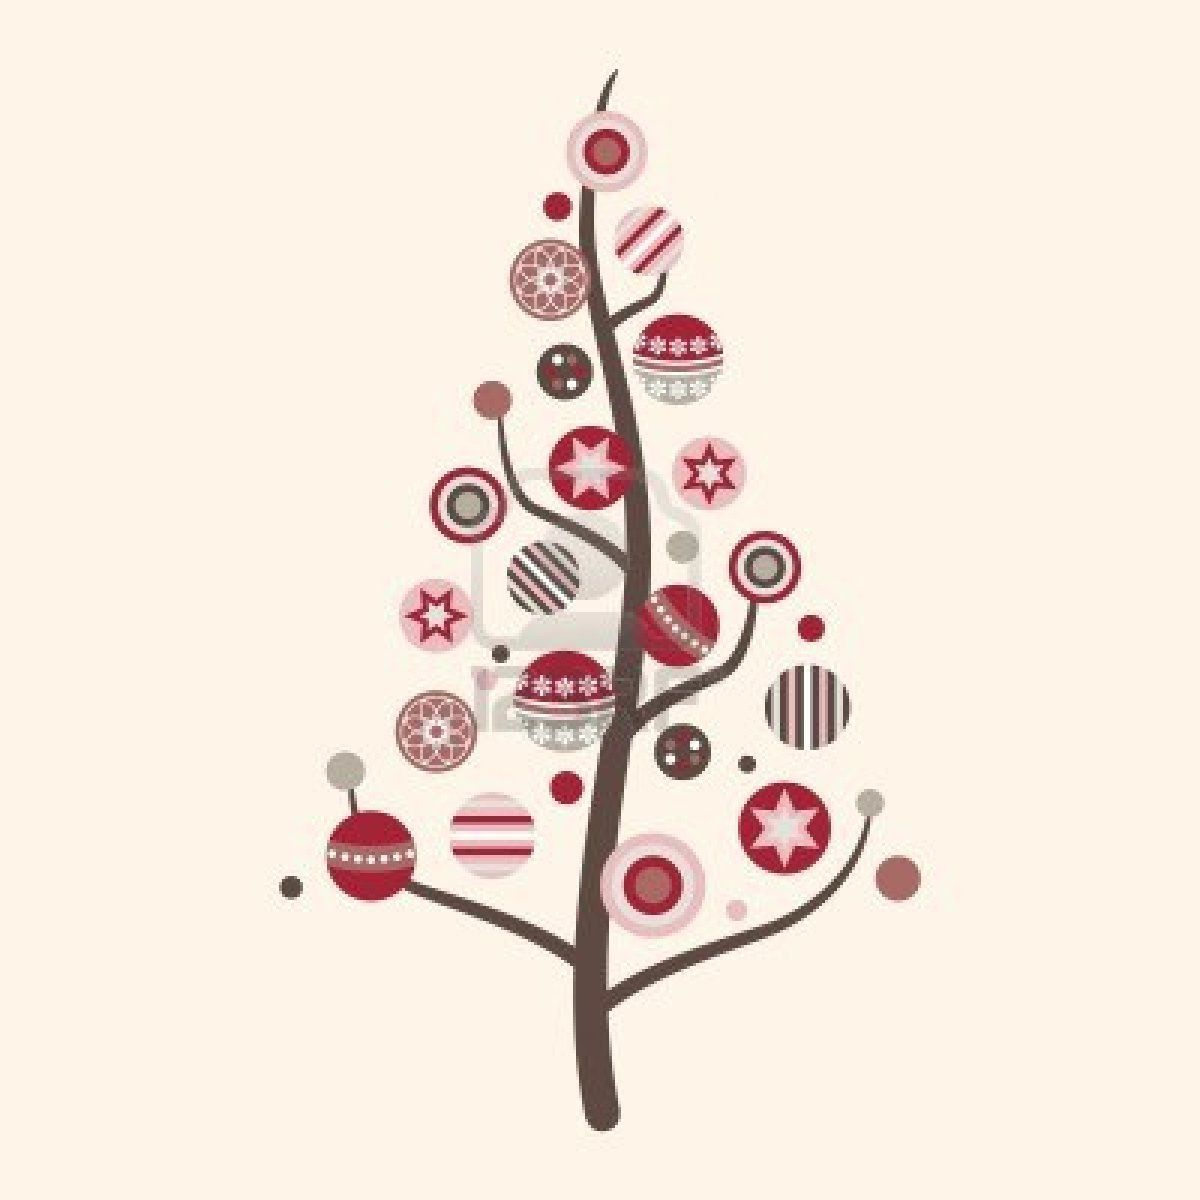 Abstract Christmas Tree Vector In Modern Colors Modern Christmas Tree Christmas Tree Decorations Modern Christmas